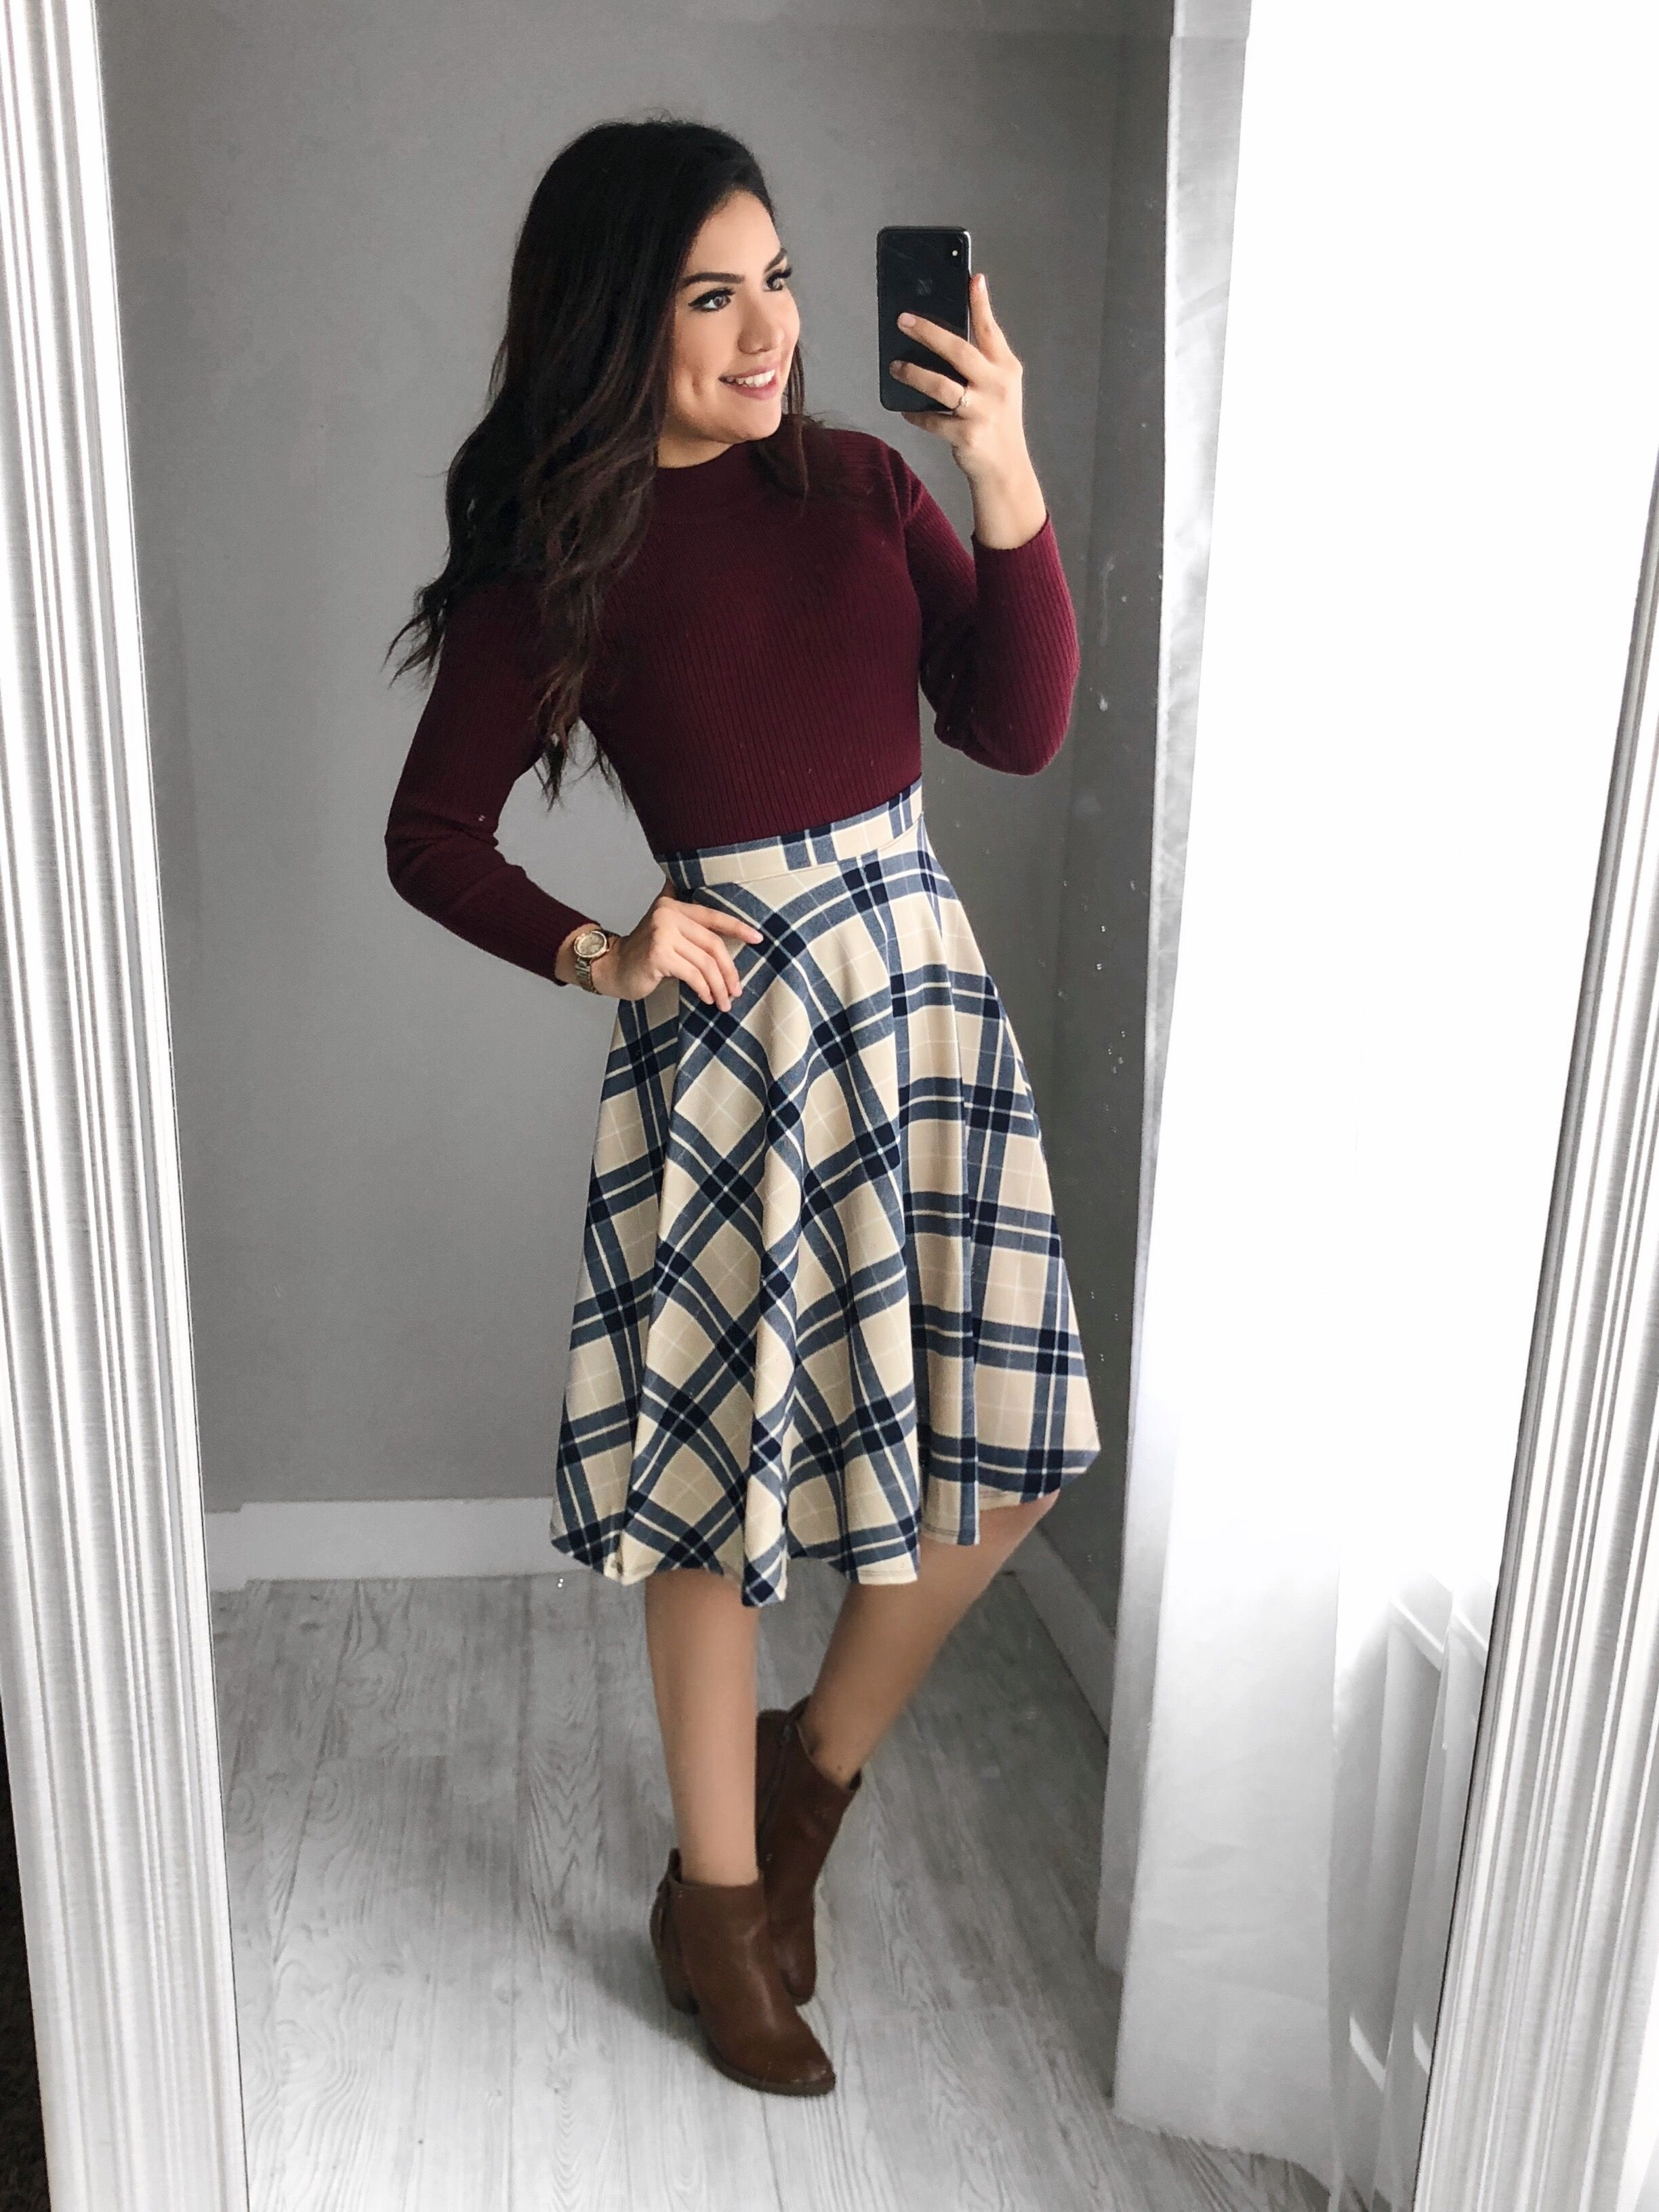 Mangas compridas+saia | Winter dress outfits, Classy outfits